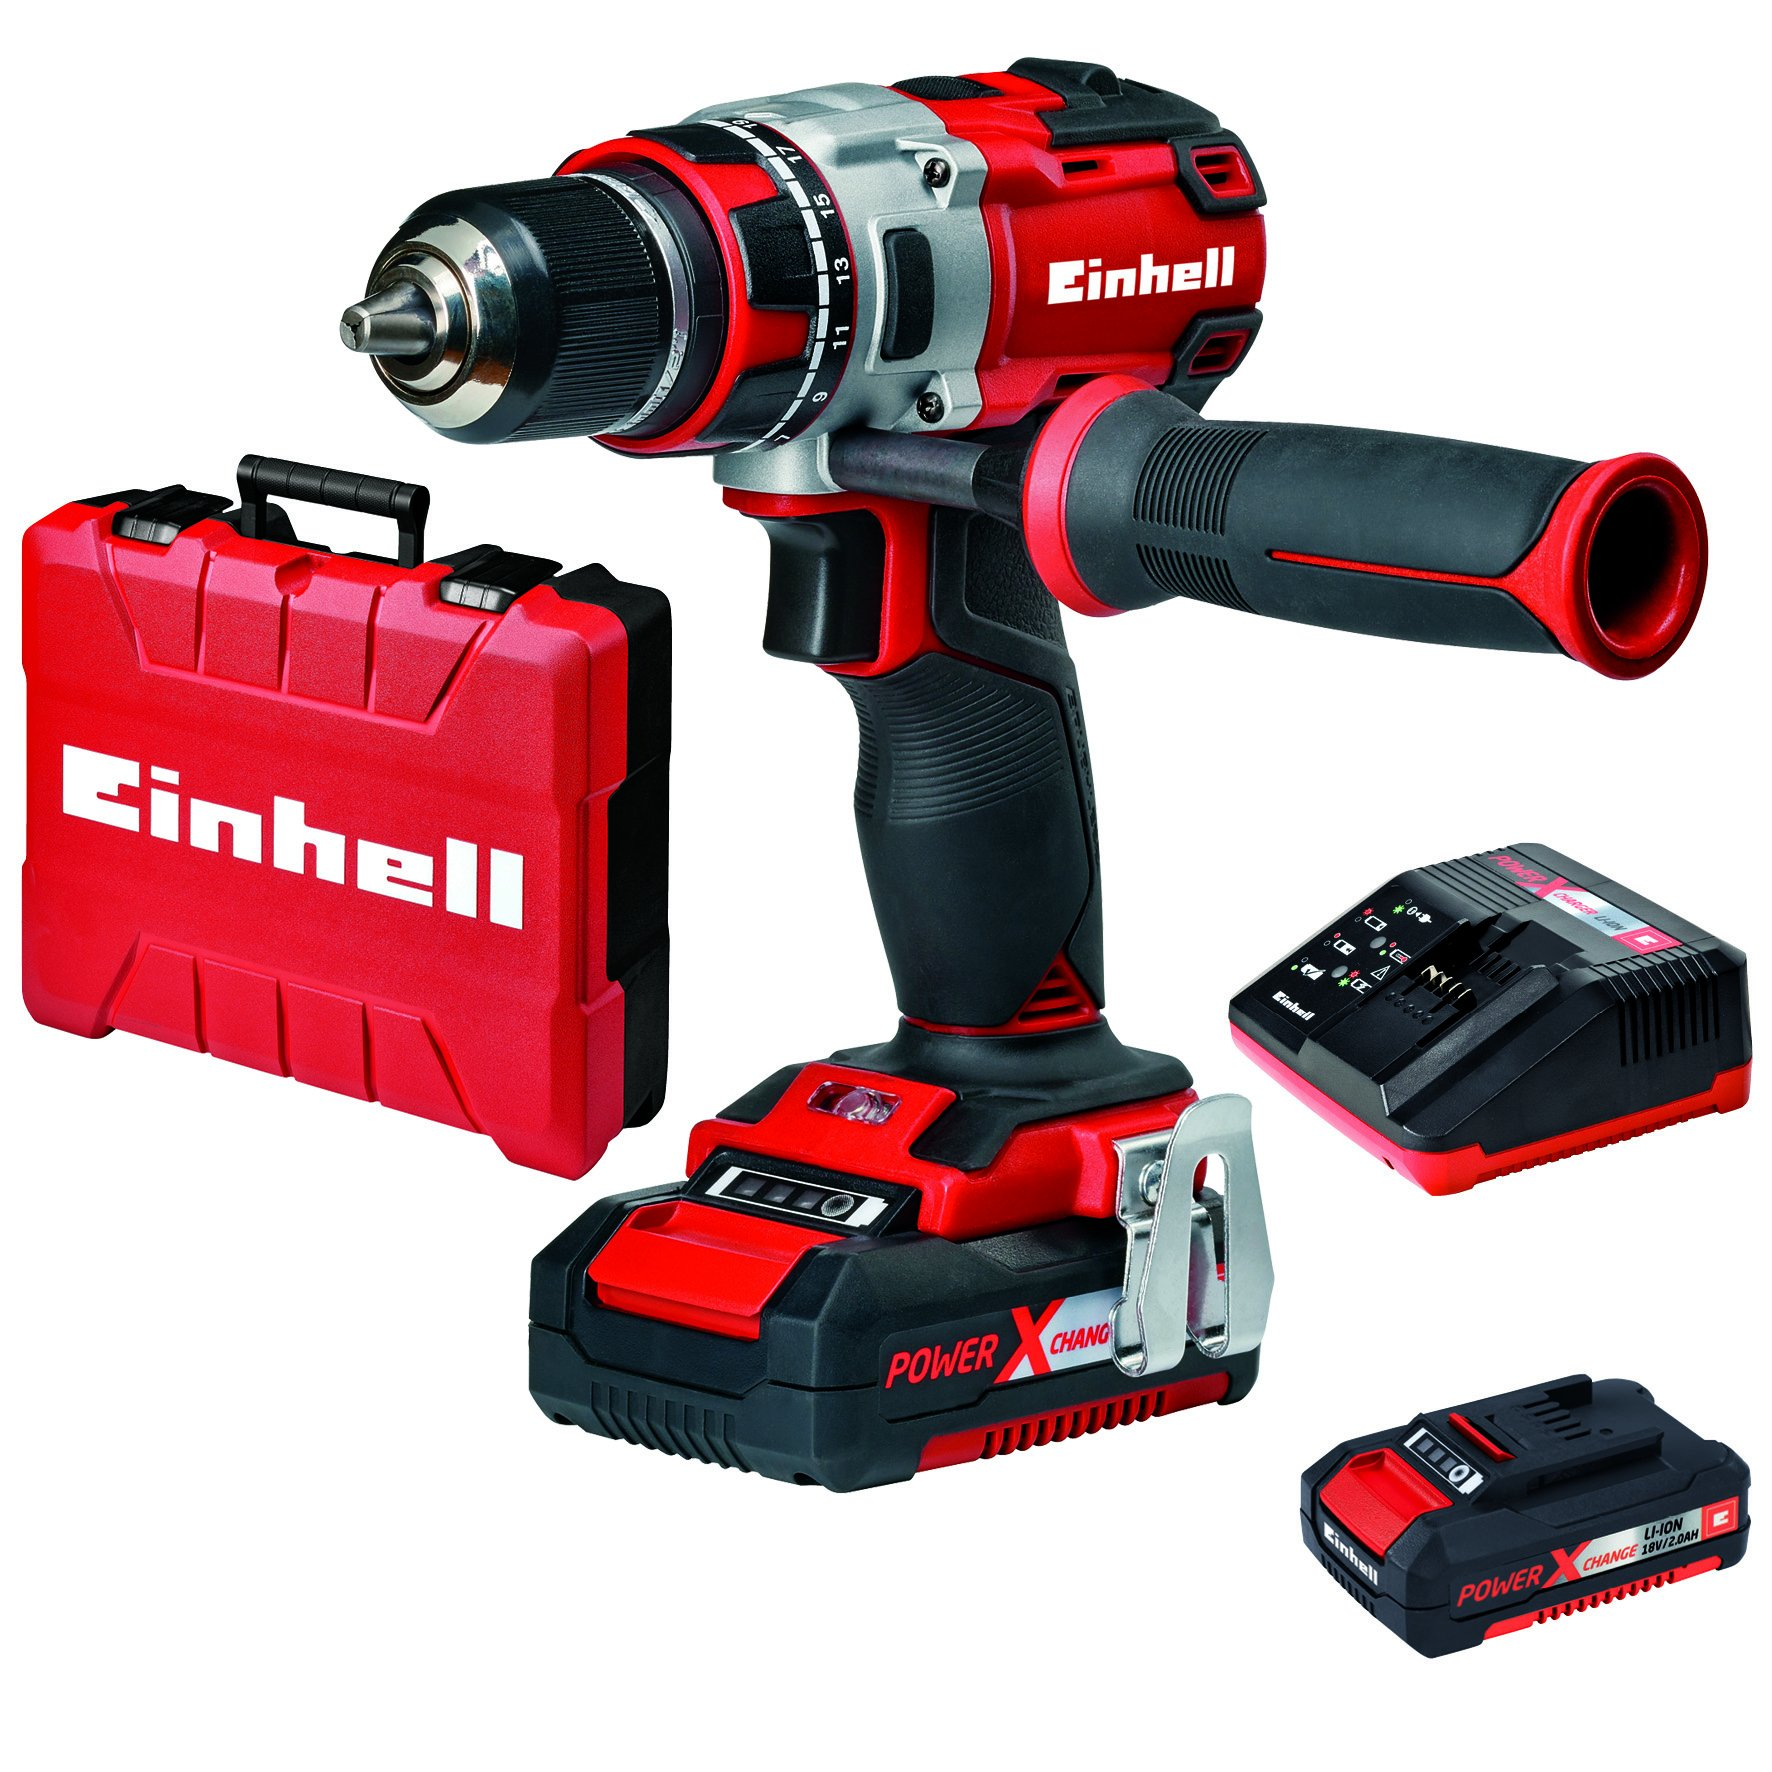 Einhell Akku Bohrschrauber TE-CD 18 Li Brushless Solo Power X-Change (Lithium Ionen, 18 V, 2 Gang, 60 Nm, LED Licht…